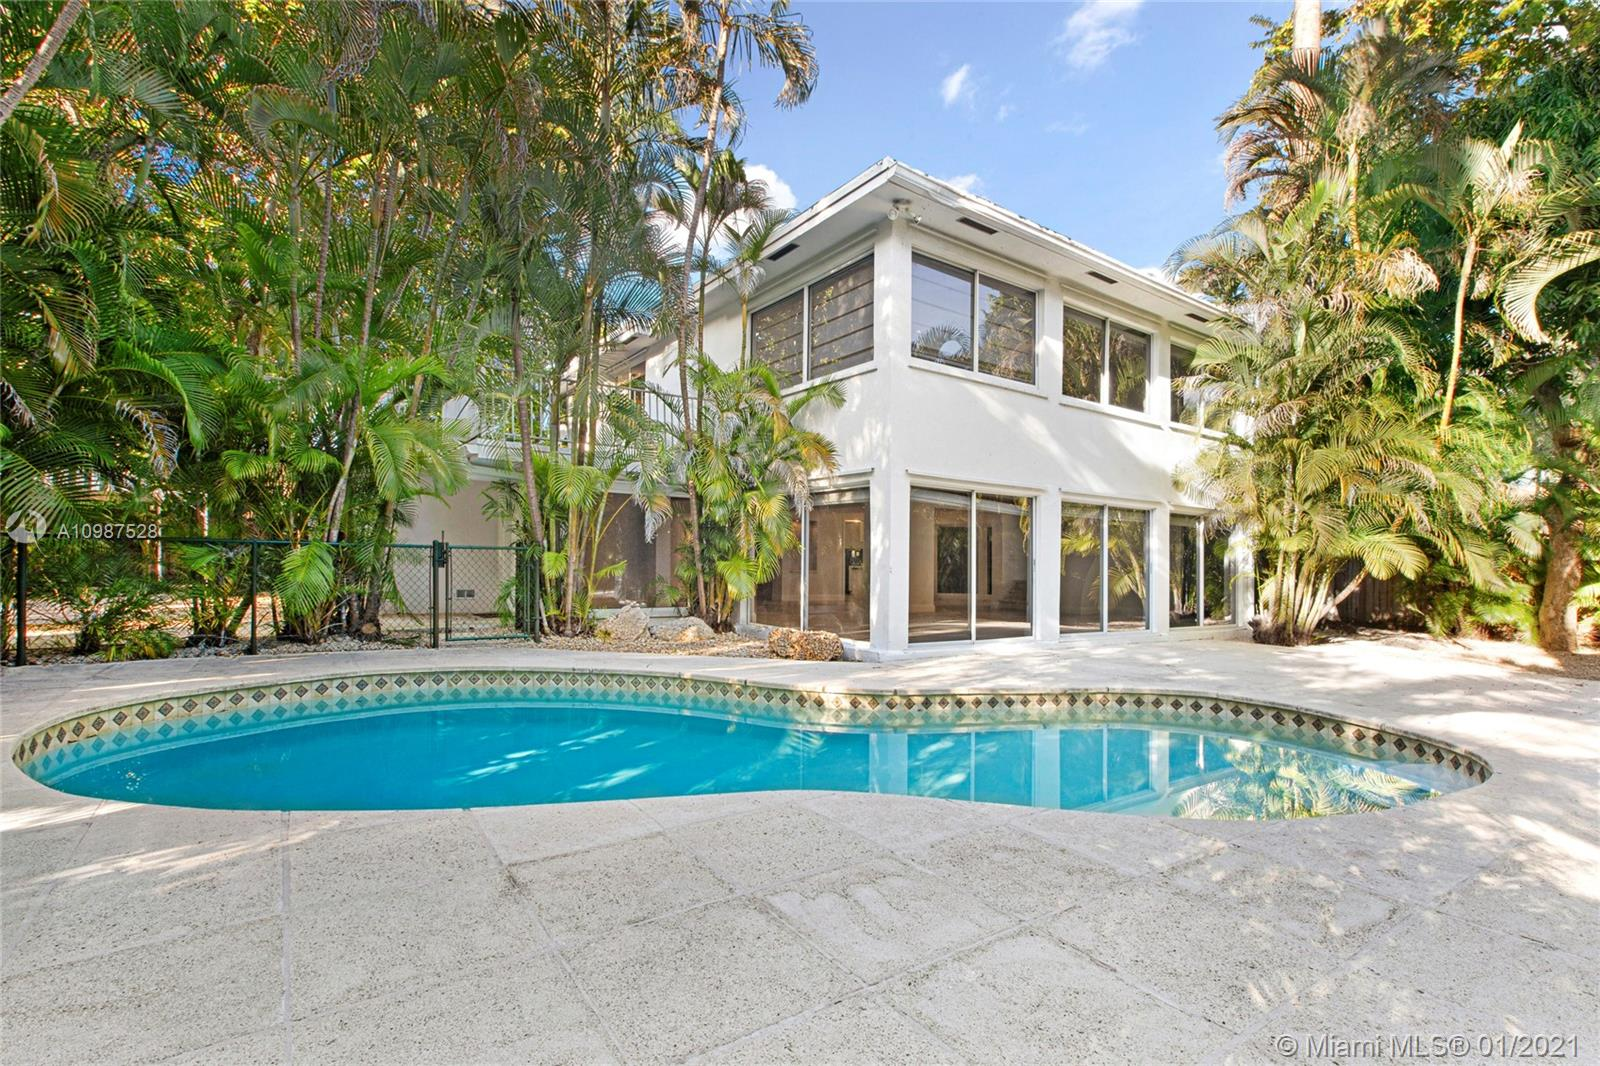 Details for 3481 Poinciana Ave, Coconut Grove, FL 33133